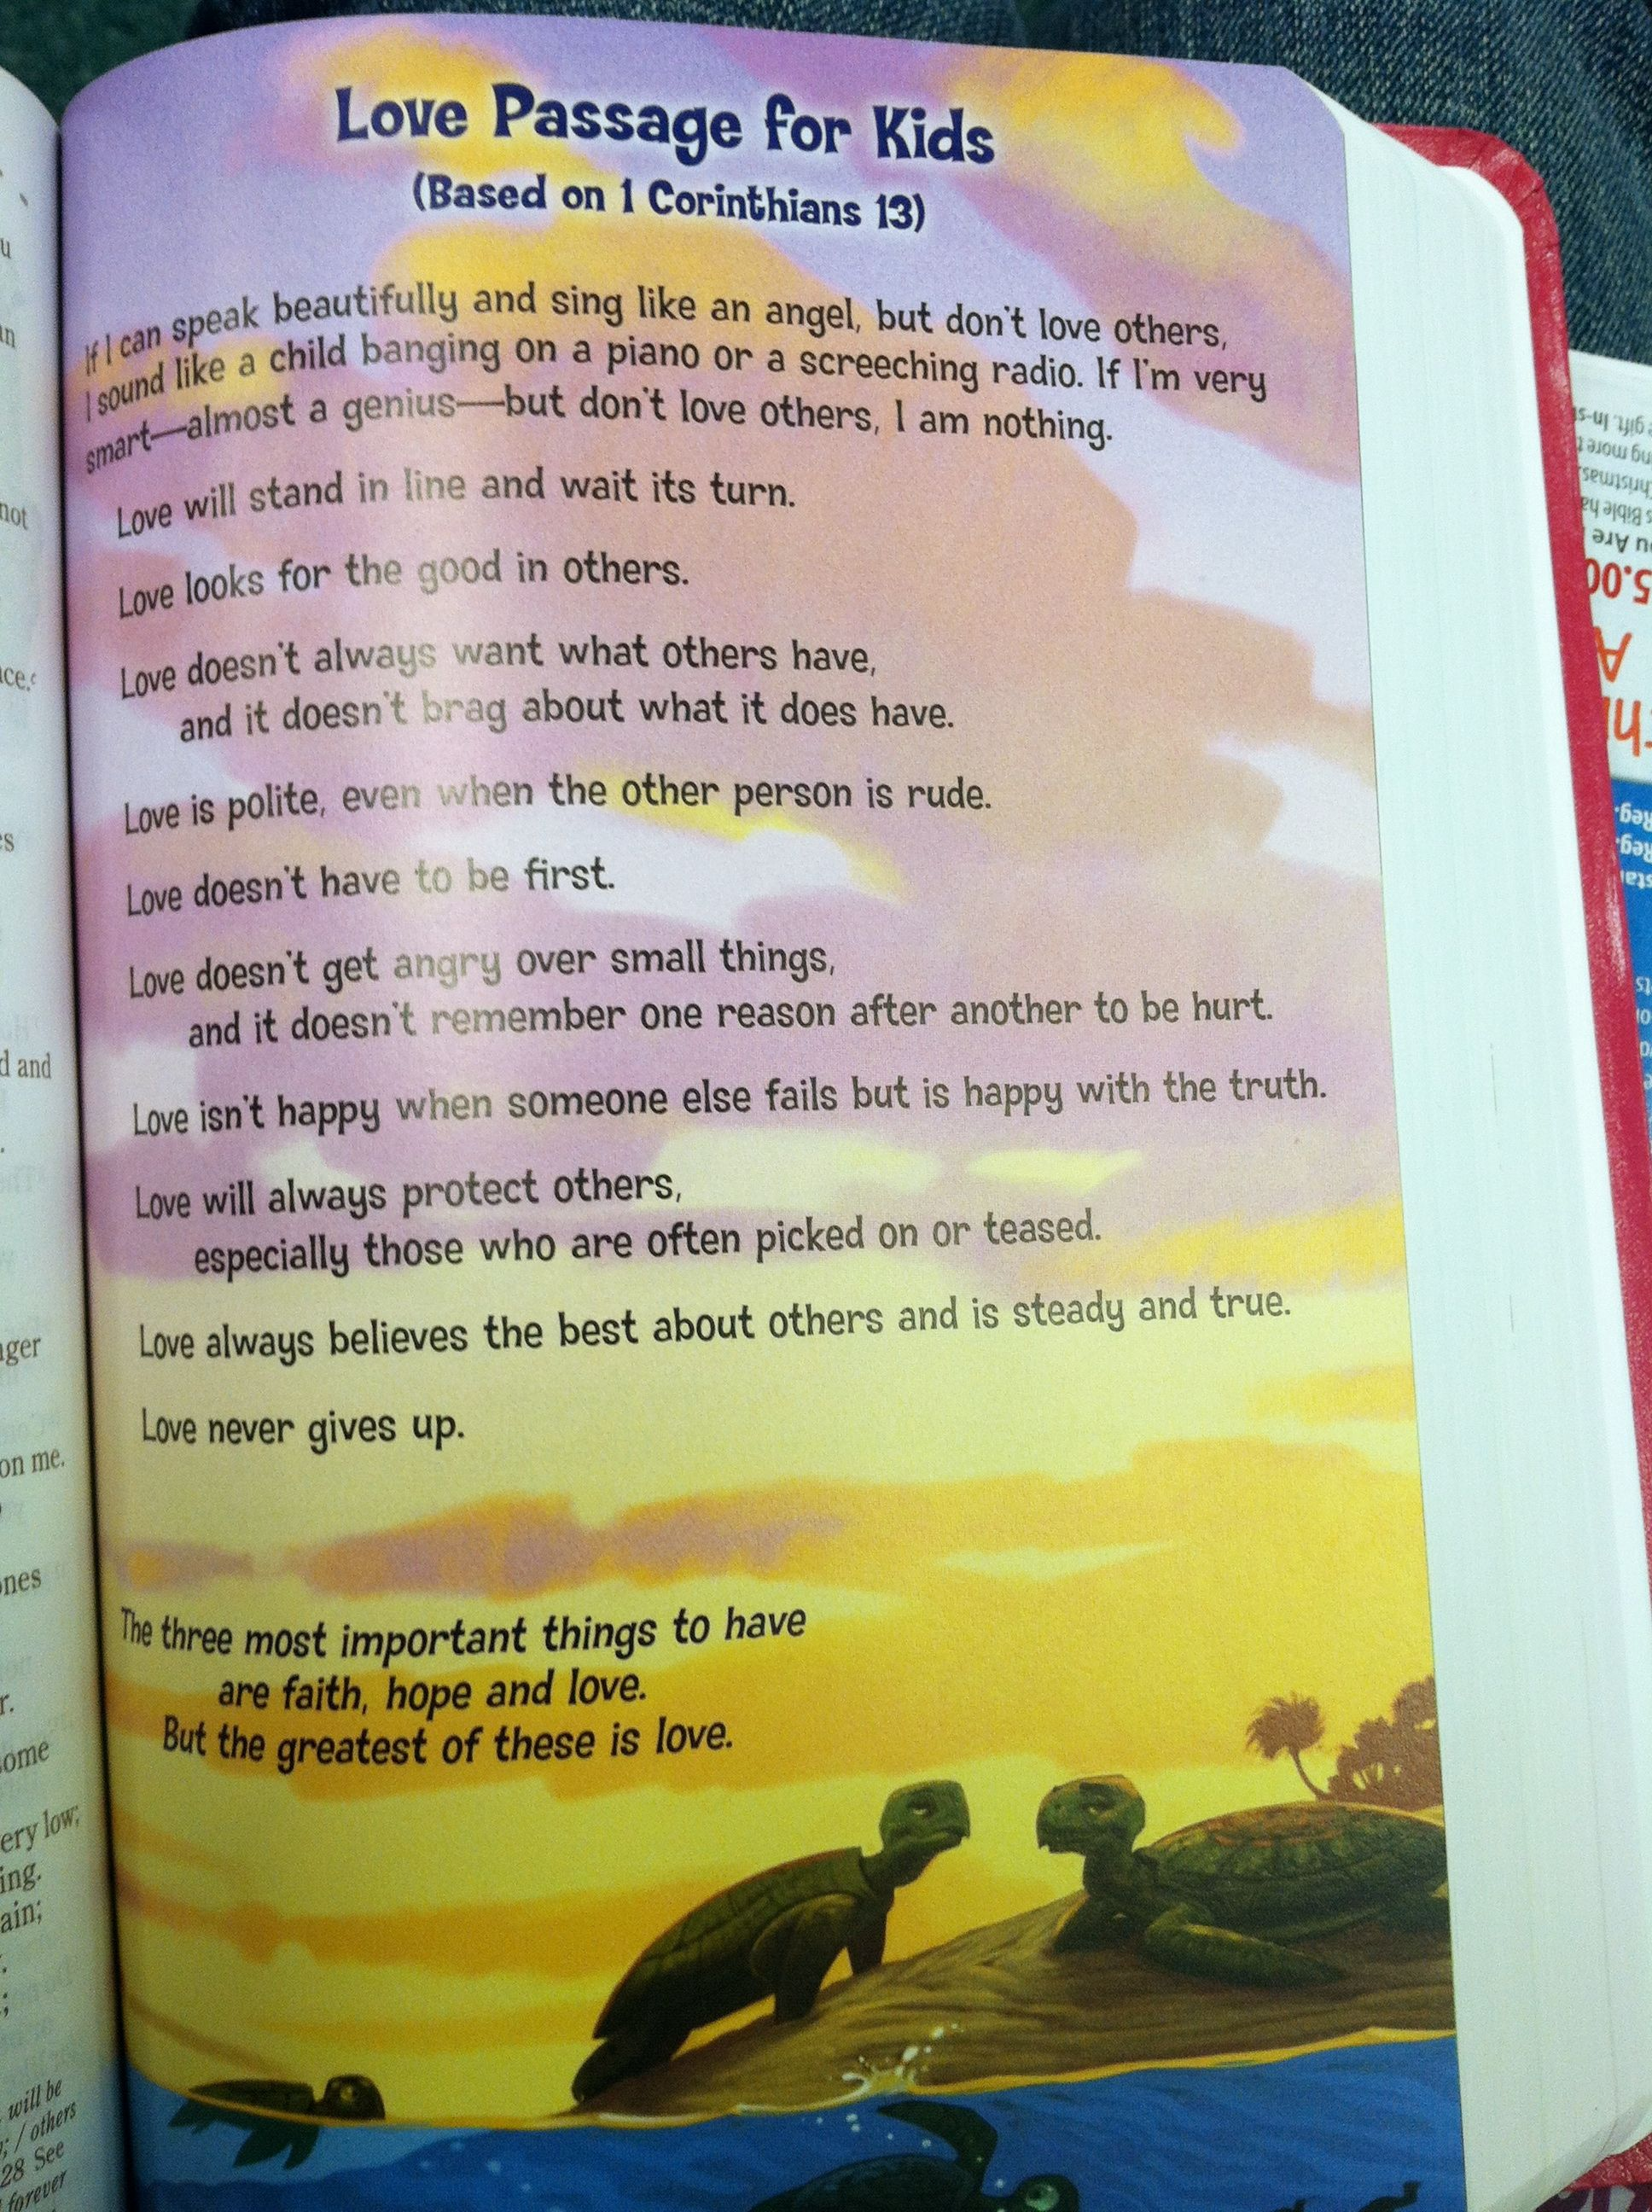 Perfect For Vday Devotional With Family 1 Corinthians 13 For Kids